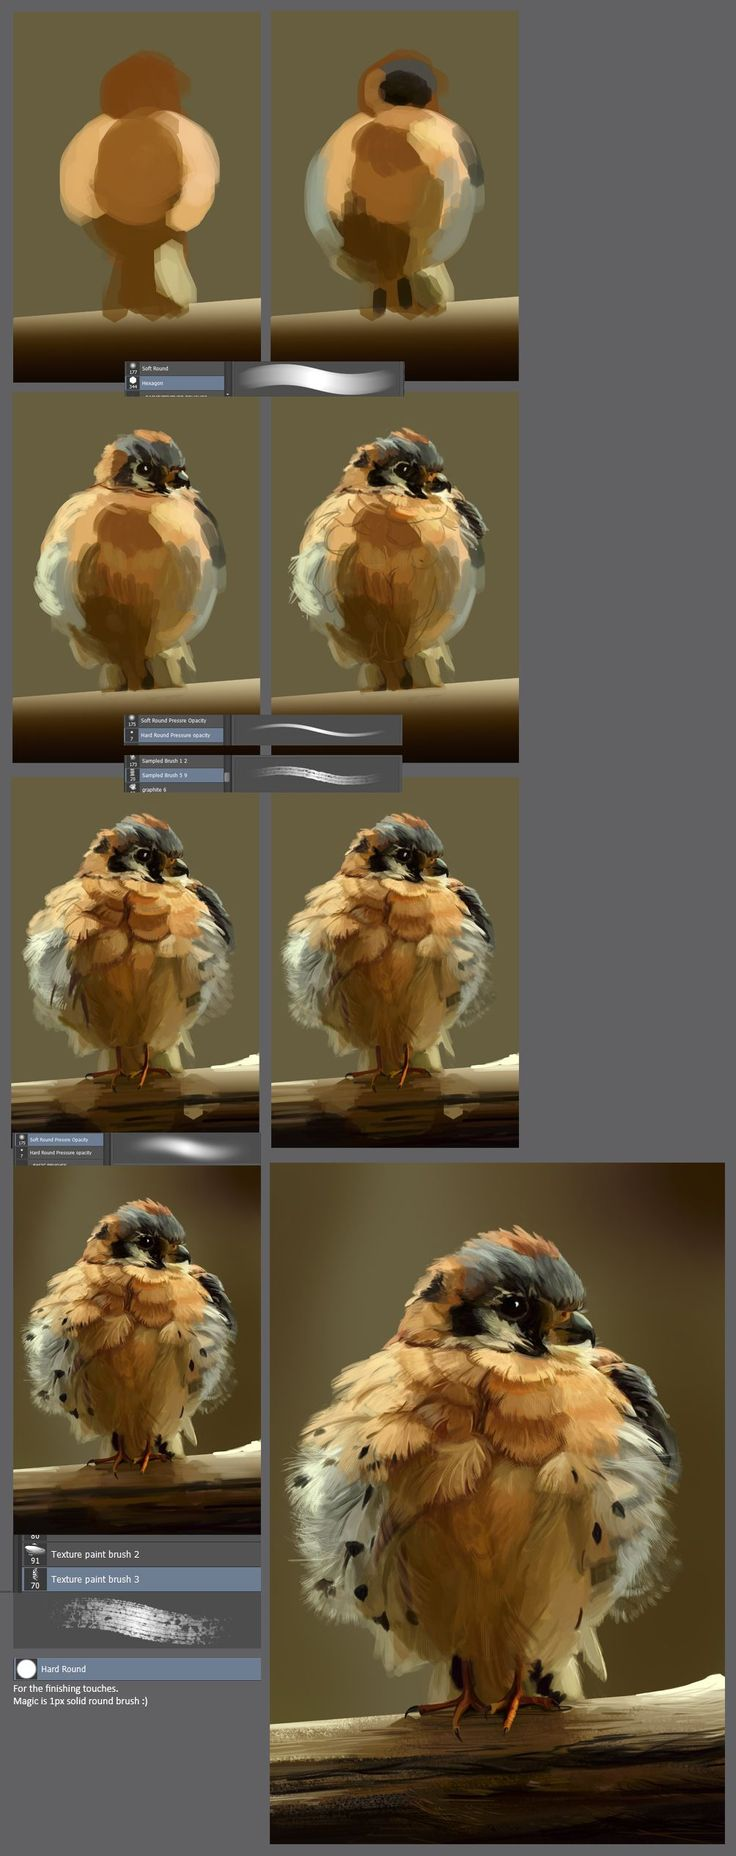 The little angry bird: step by step tutorial by XGingerWR on DeviantArt